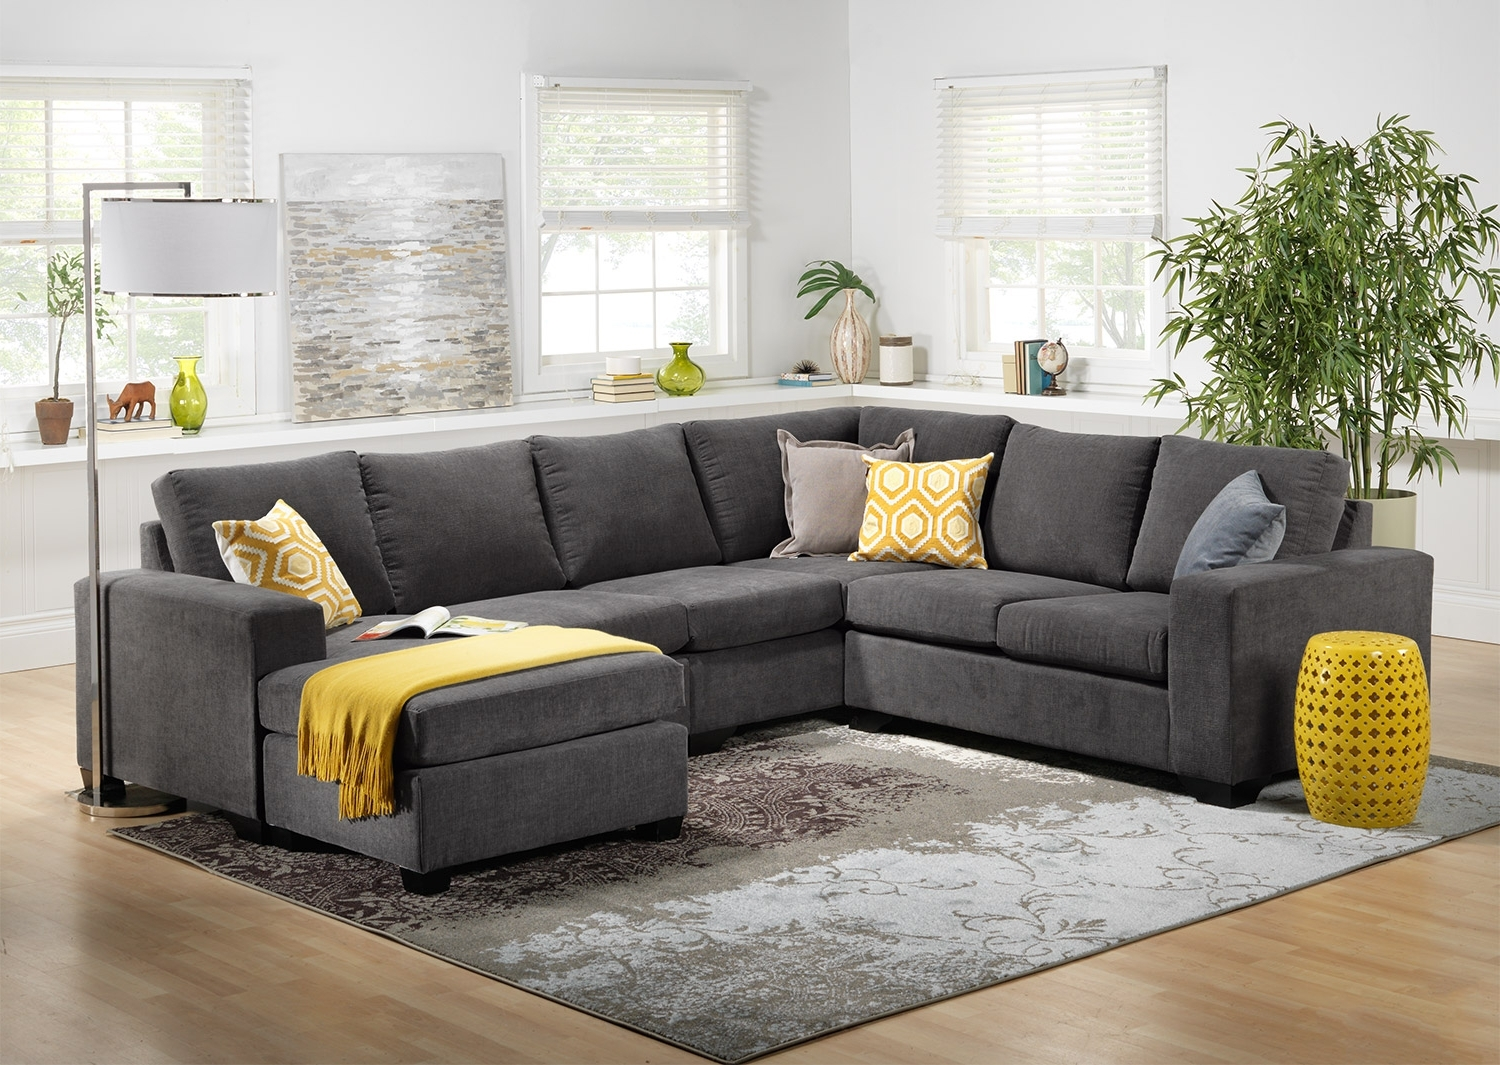 Ontario Canada Sectional Sofas With Regard To Most Up To Date Used Sectional Sofas For Sale Edmonton Best Home Furniture Ideas (View 15 of 20)